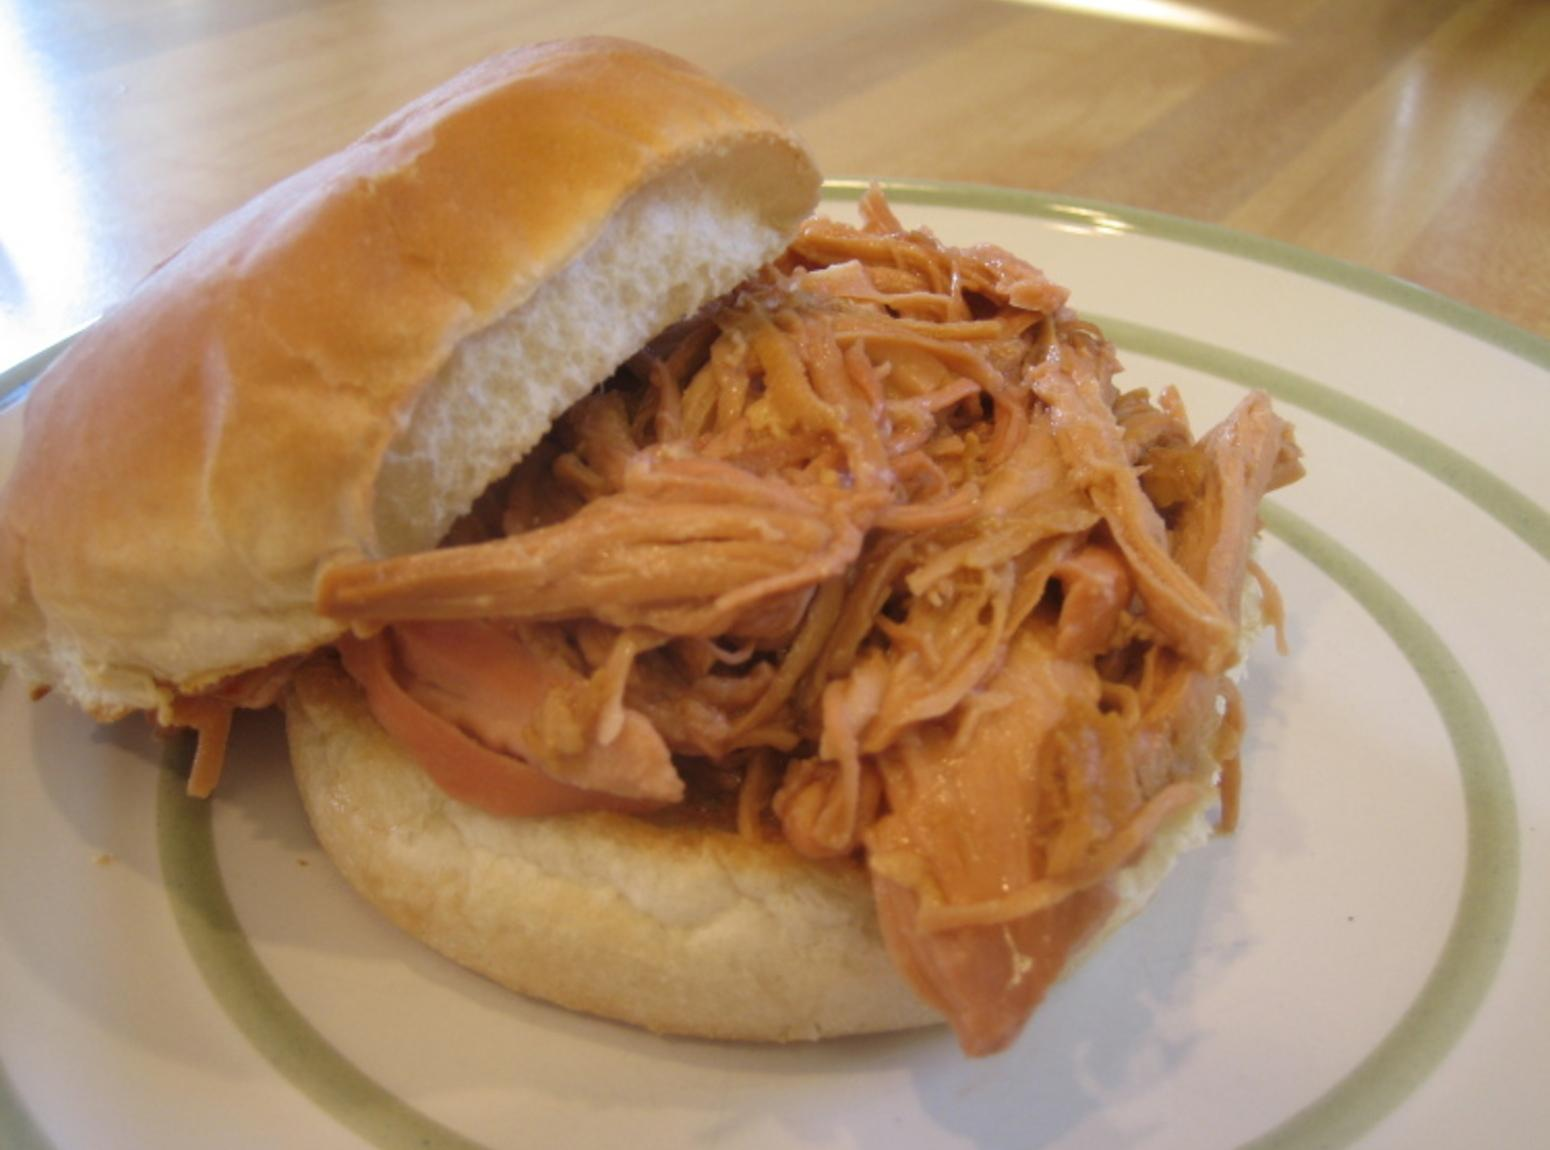 Zesty Crock Pot BBQ Chicken sandwiches Recipe